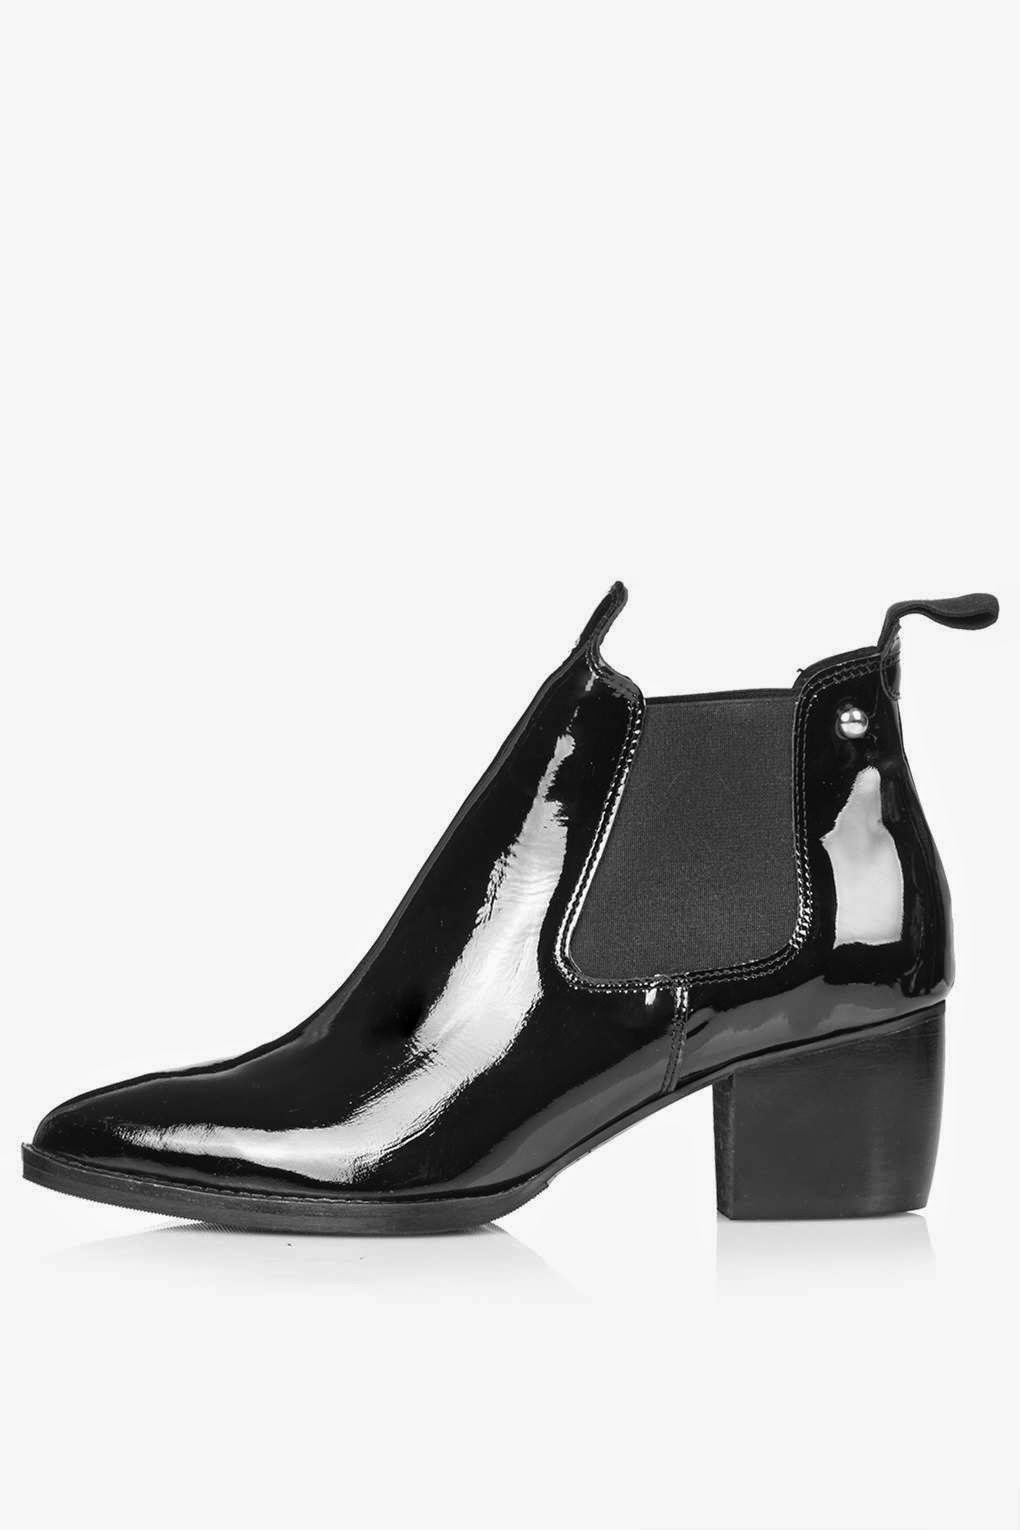 topshop patent ankle boots